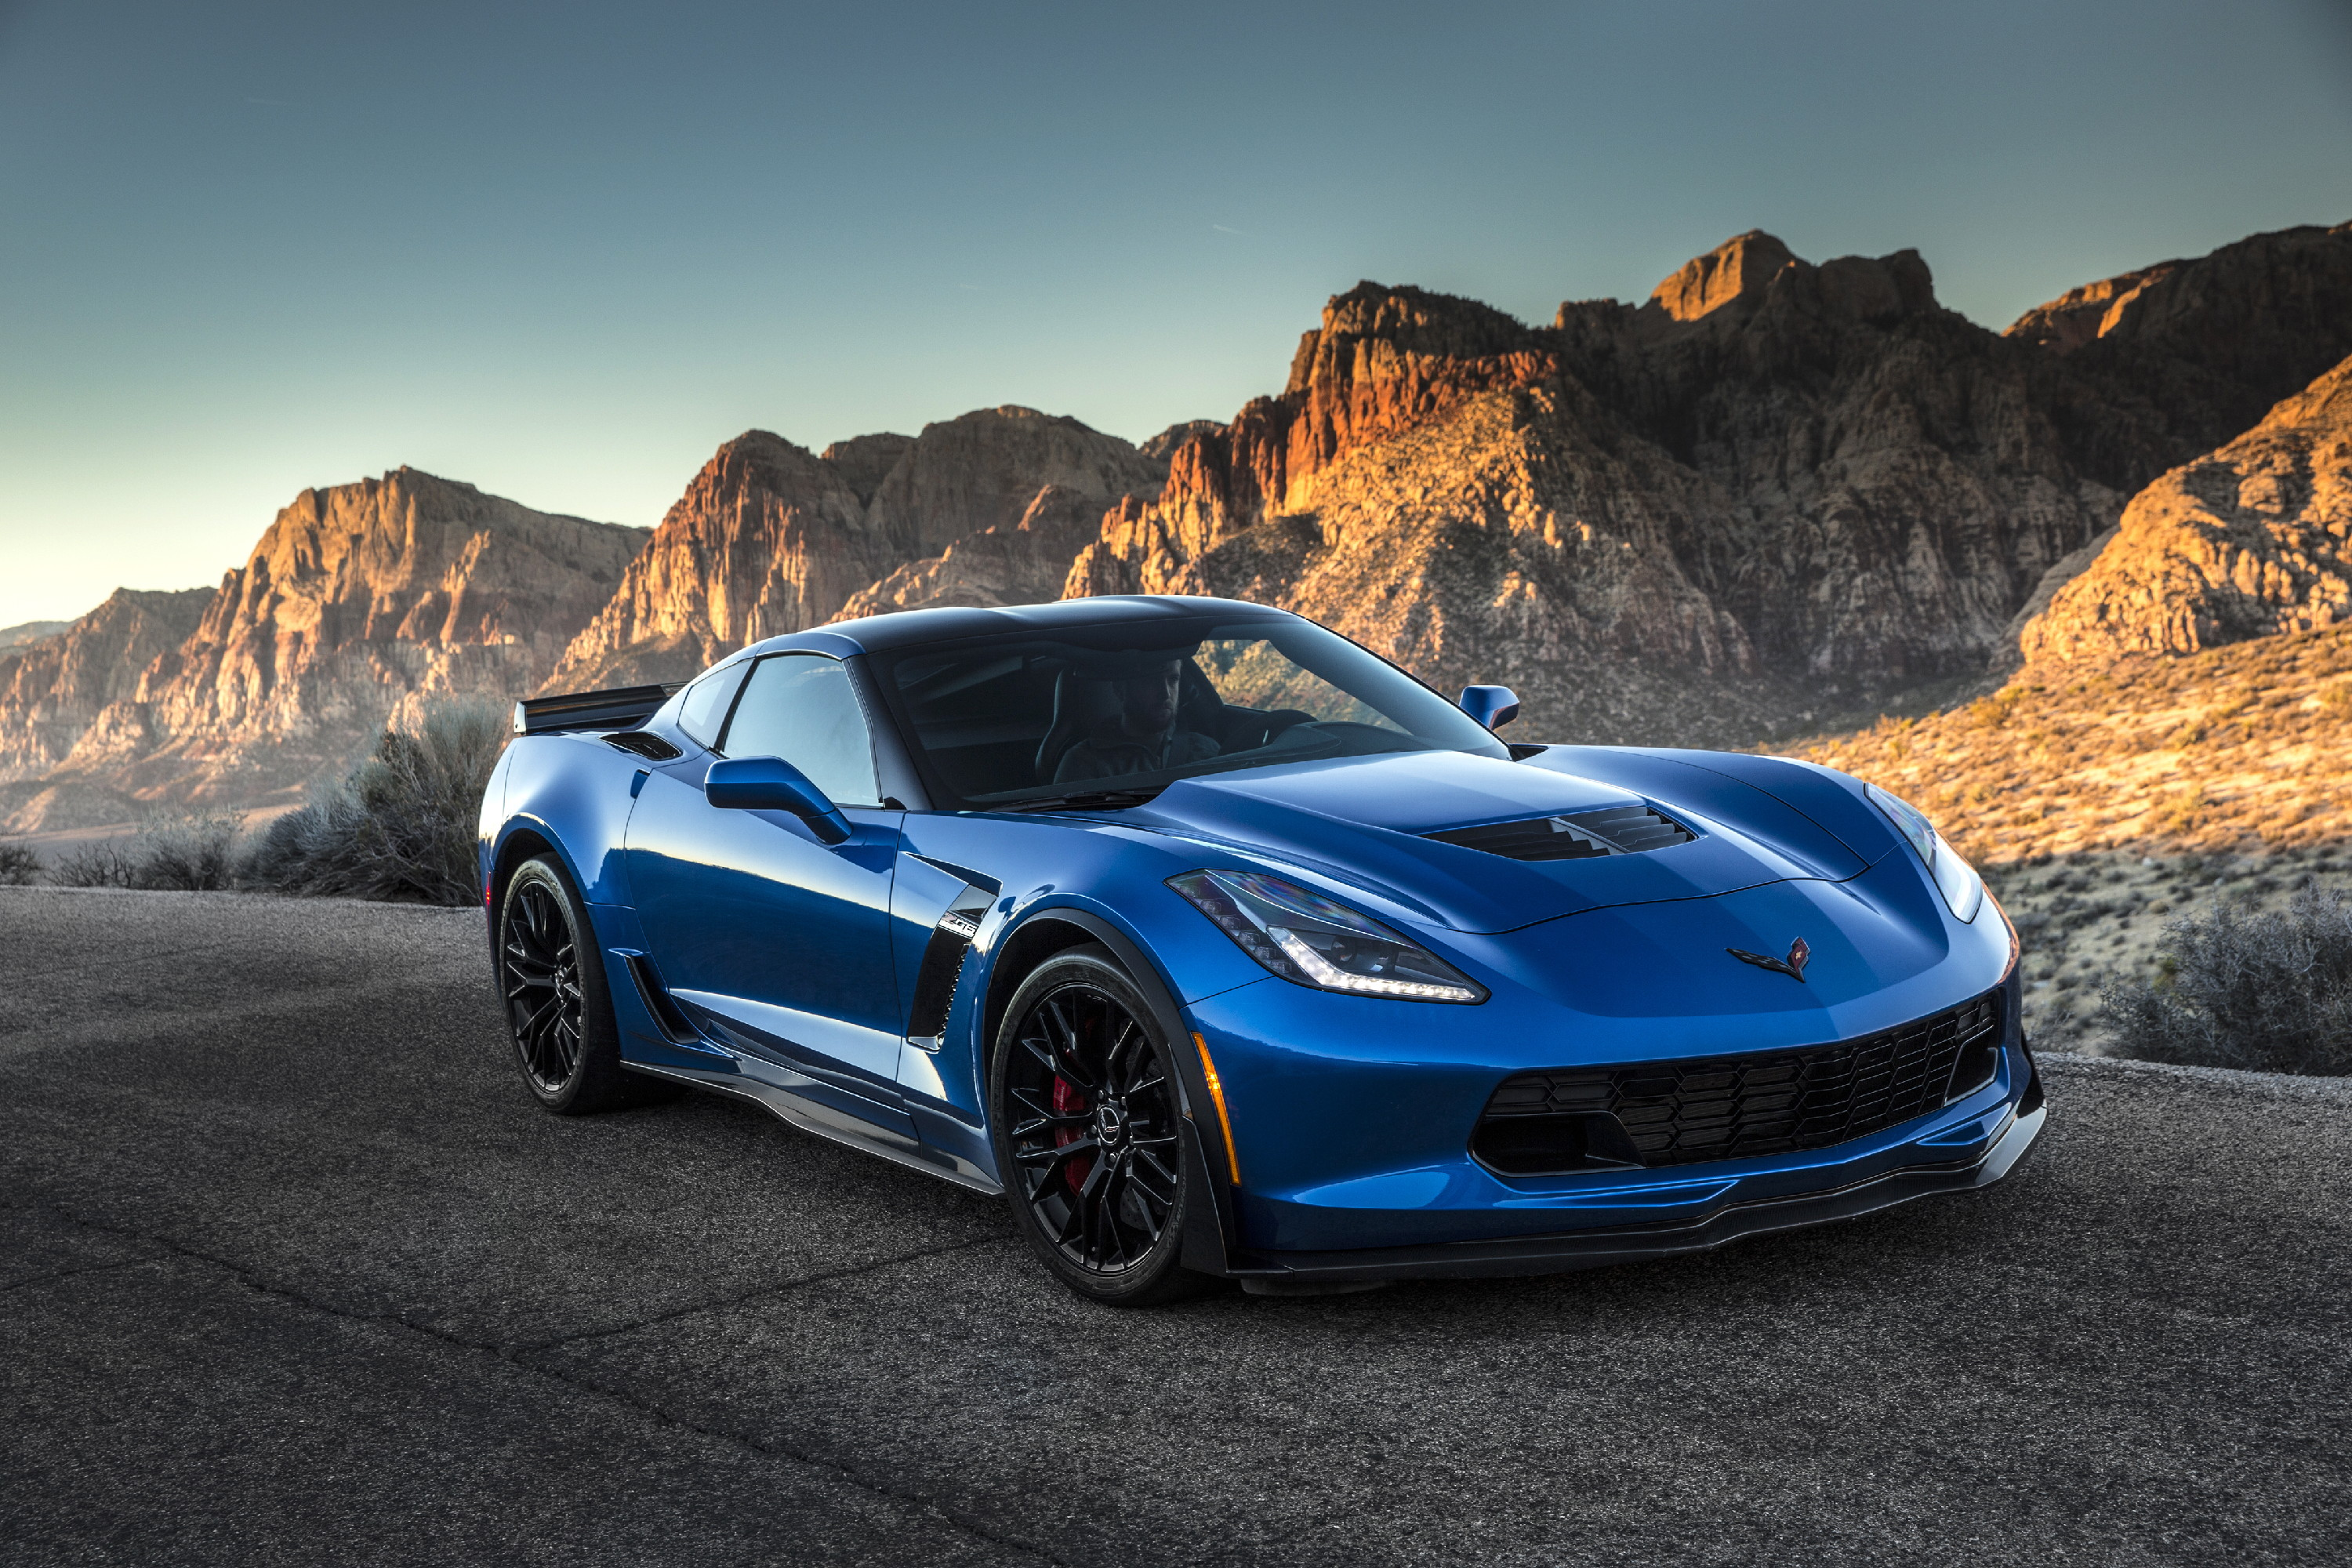 Return Of The Legendary Supercar Chevrolet Corvette Z06 Is Most Ful And Technologically Advanced Ever